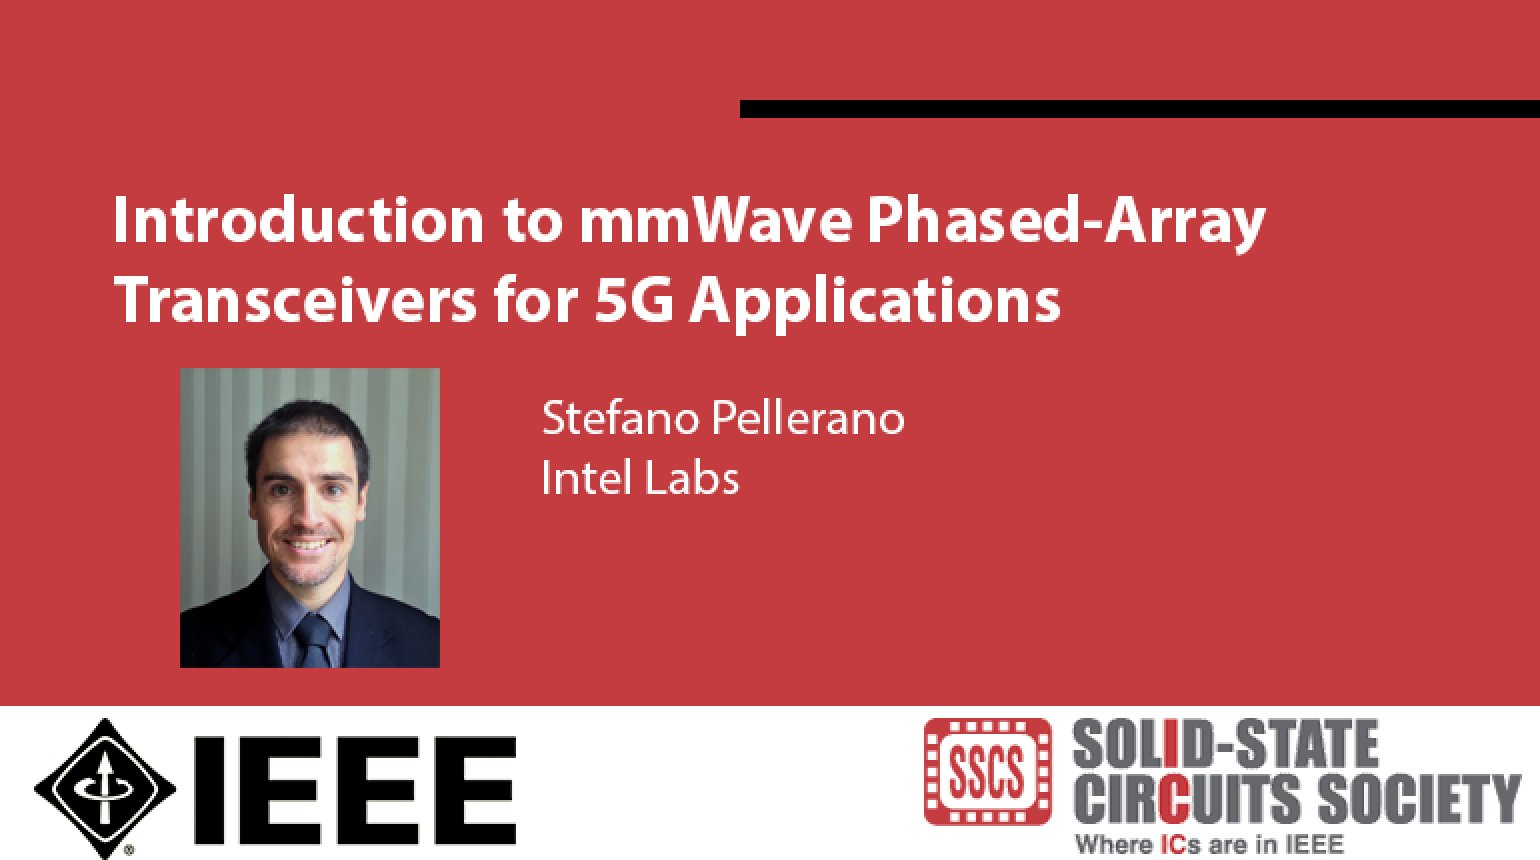 Introduction to mmWave Phased-Array Transceivers for 5G Applications Video